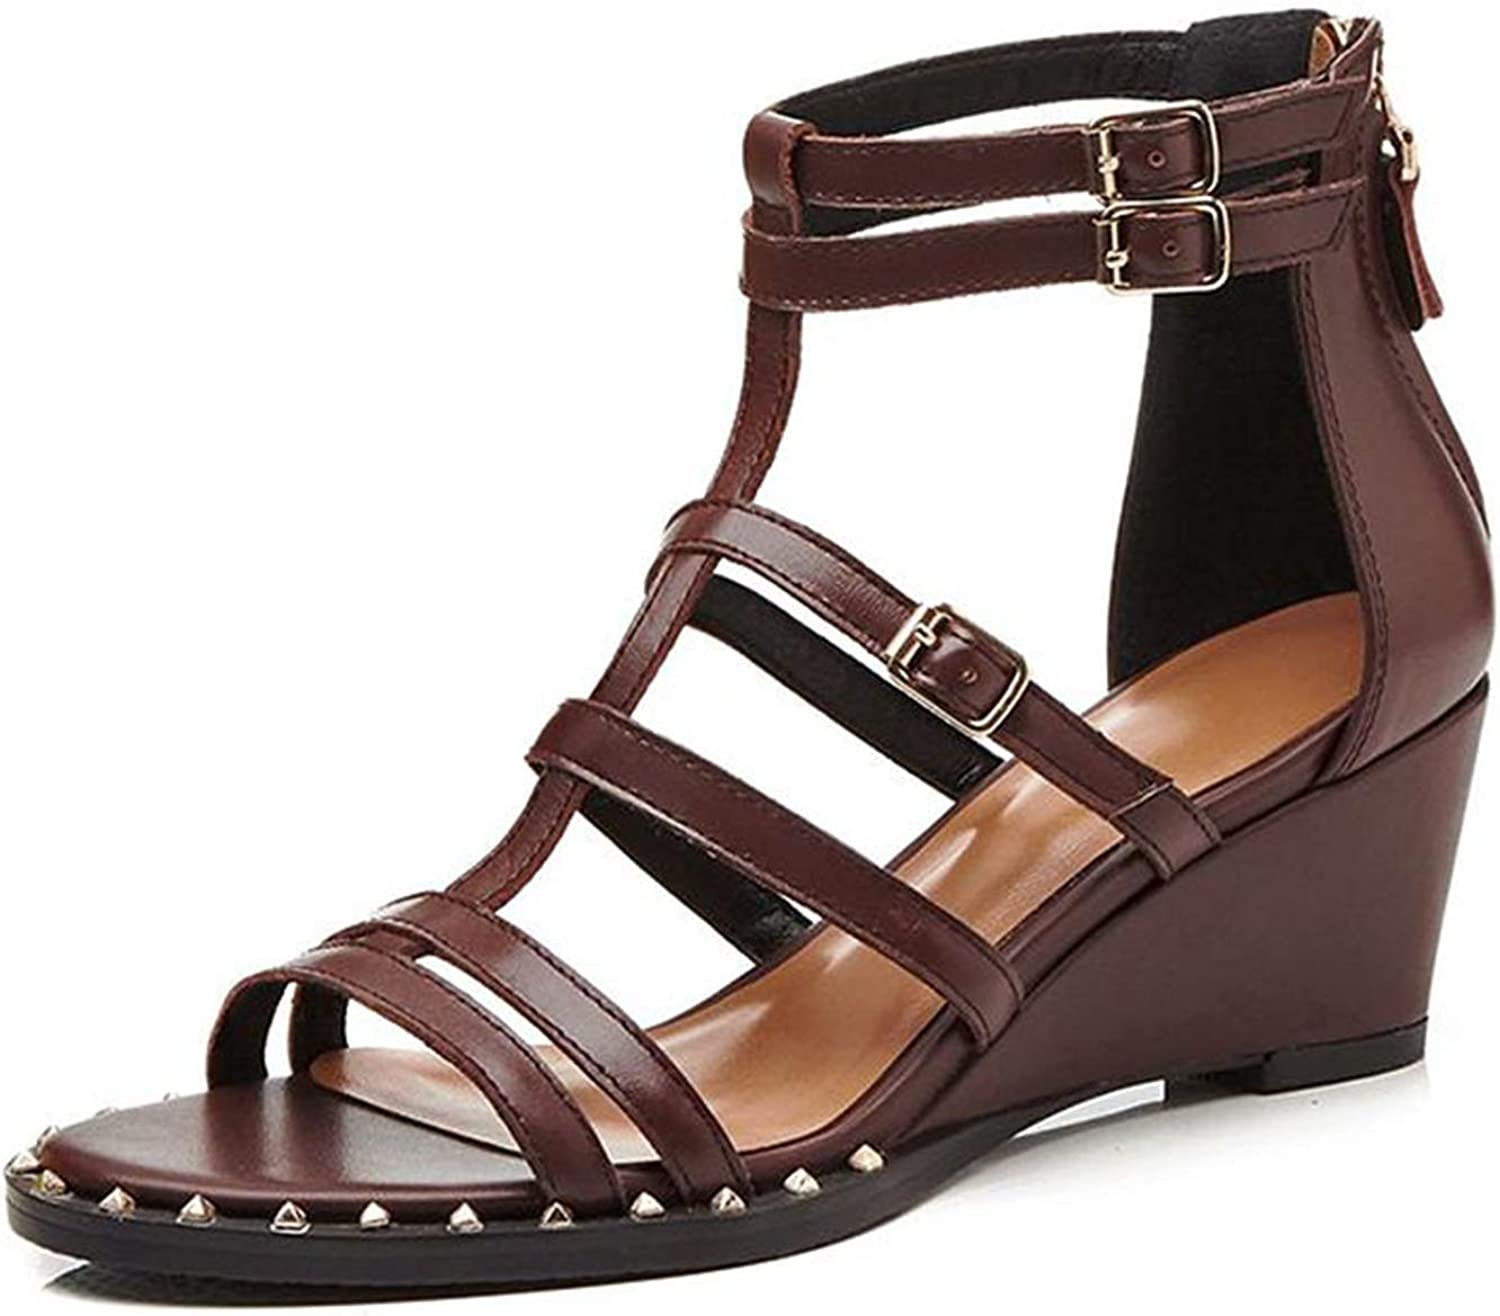 Smile-bi Women Real Leather Gladiator Sandals High Heel Buckle Party Club shoes Women Wedges Summer shoes